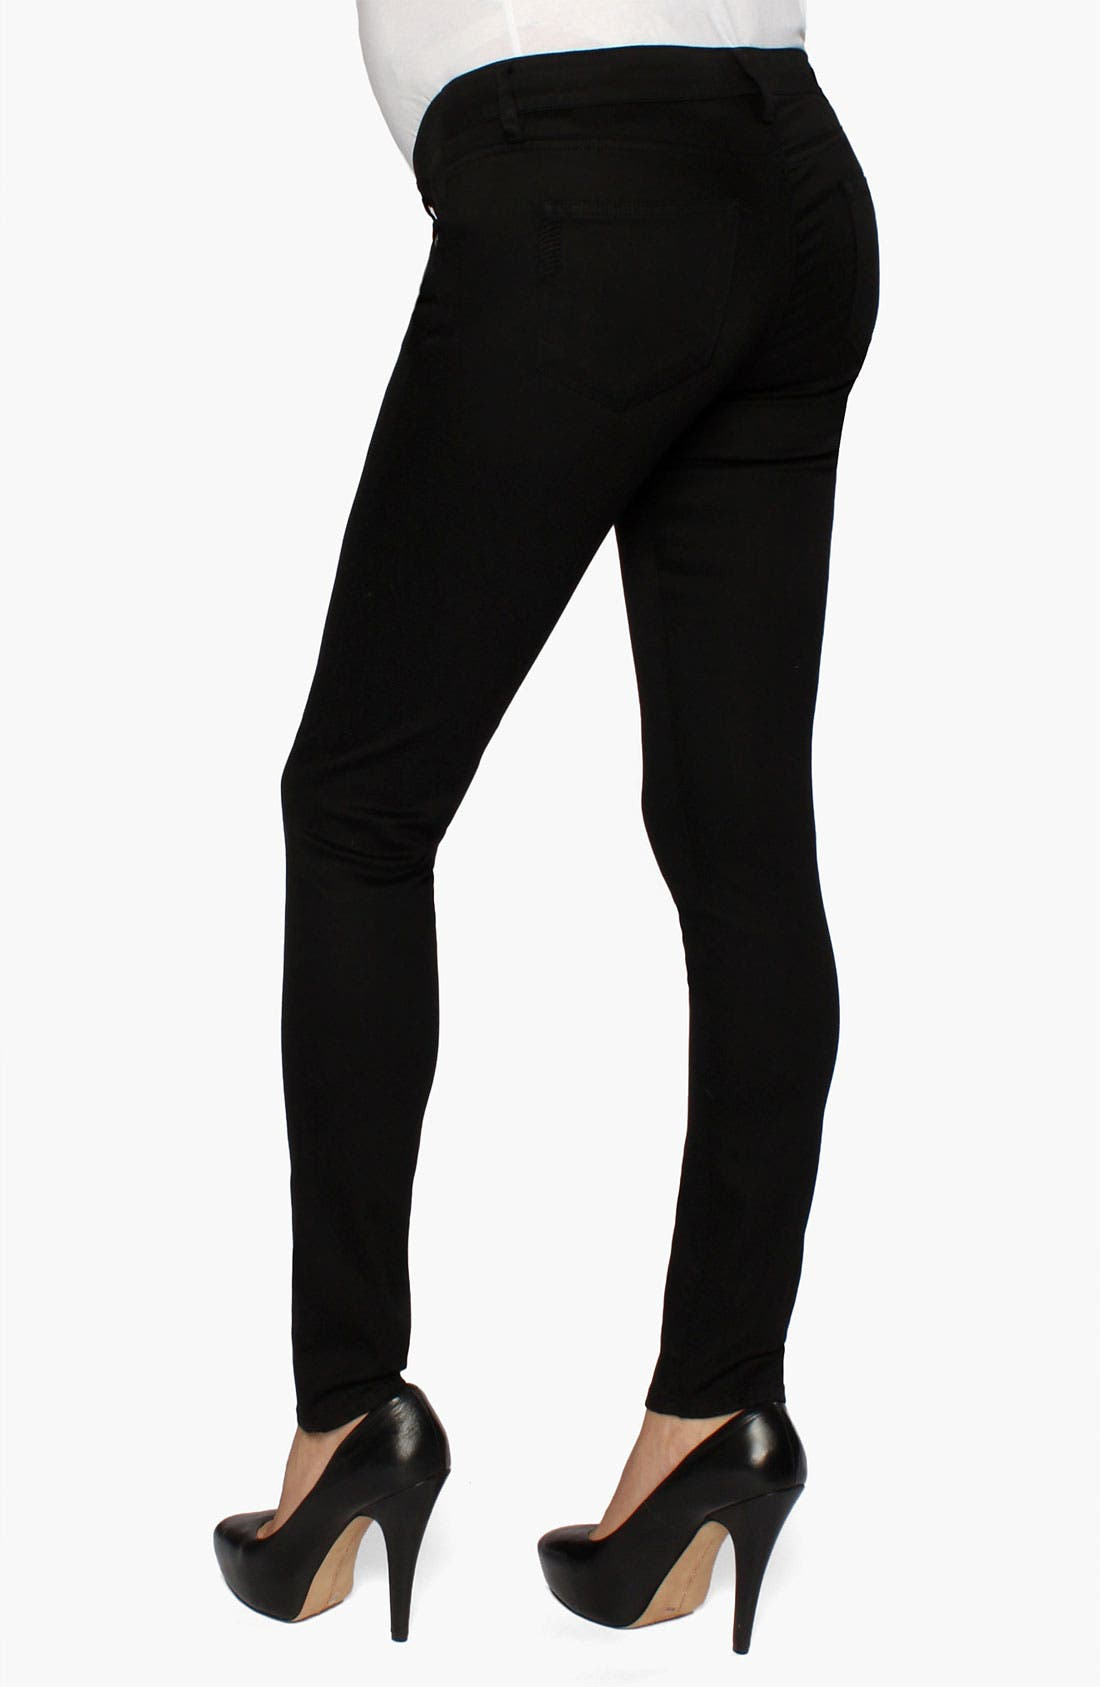 Alternate Image 1 Selected - Paige Denim 'Verdugo' Maternity Ultra Skinny Jeans (Black)